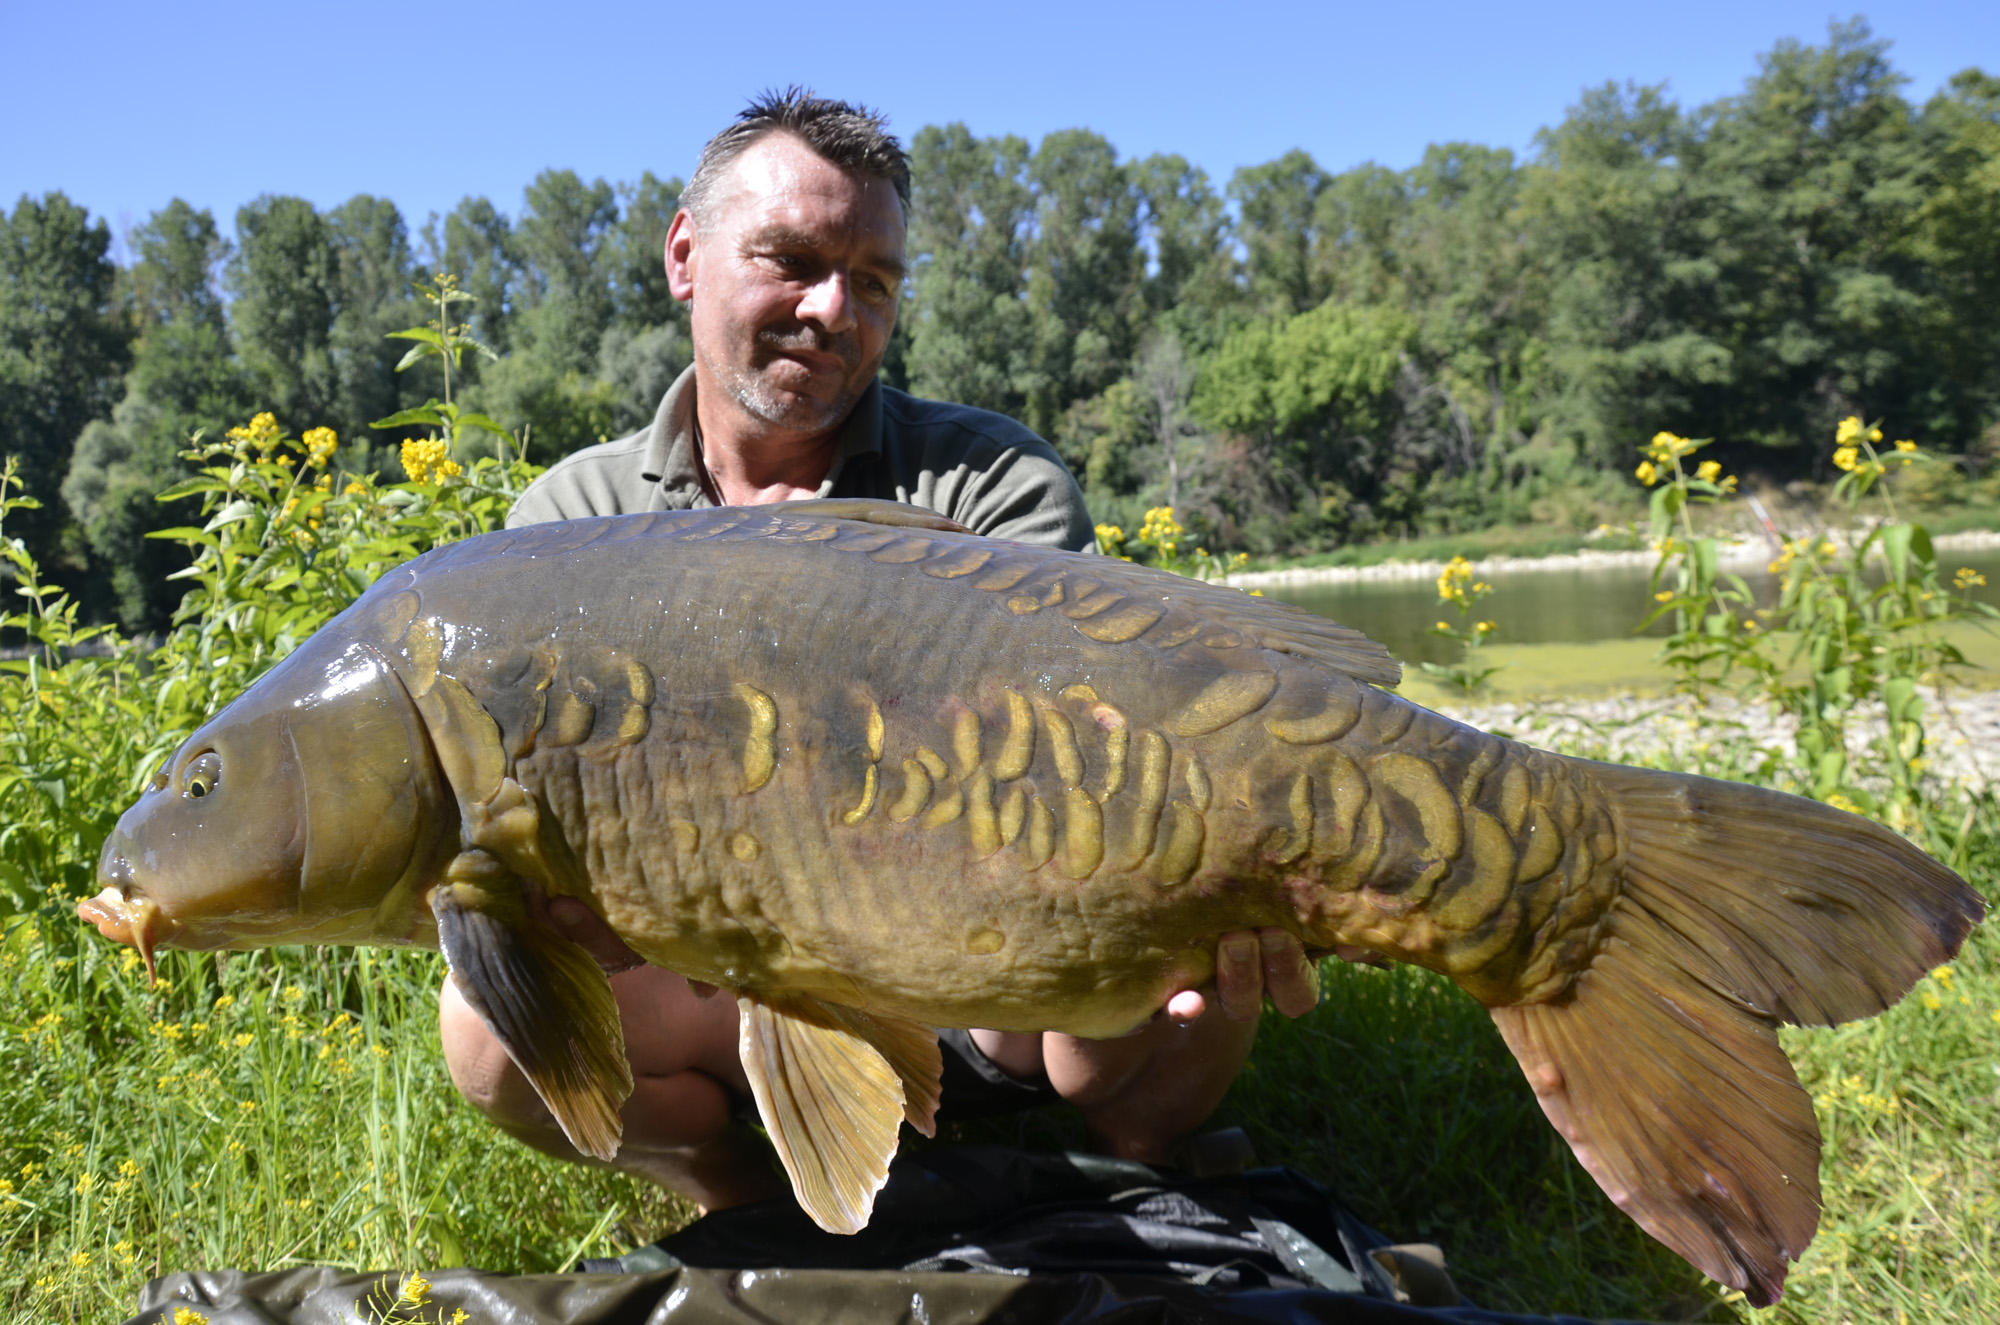 http://www.starbaits.com/fichiers/images/team/gallery/PARIS_Michel/9 PARIS Michel.JPG